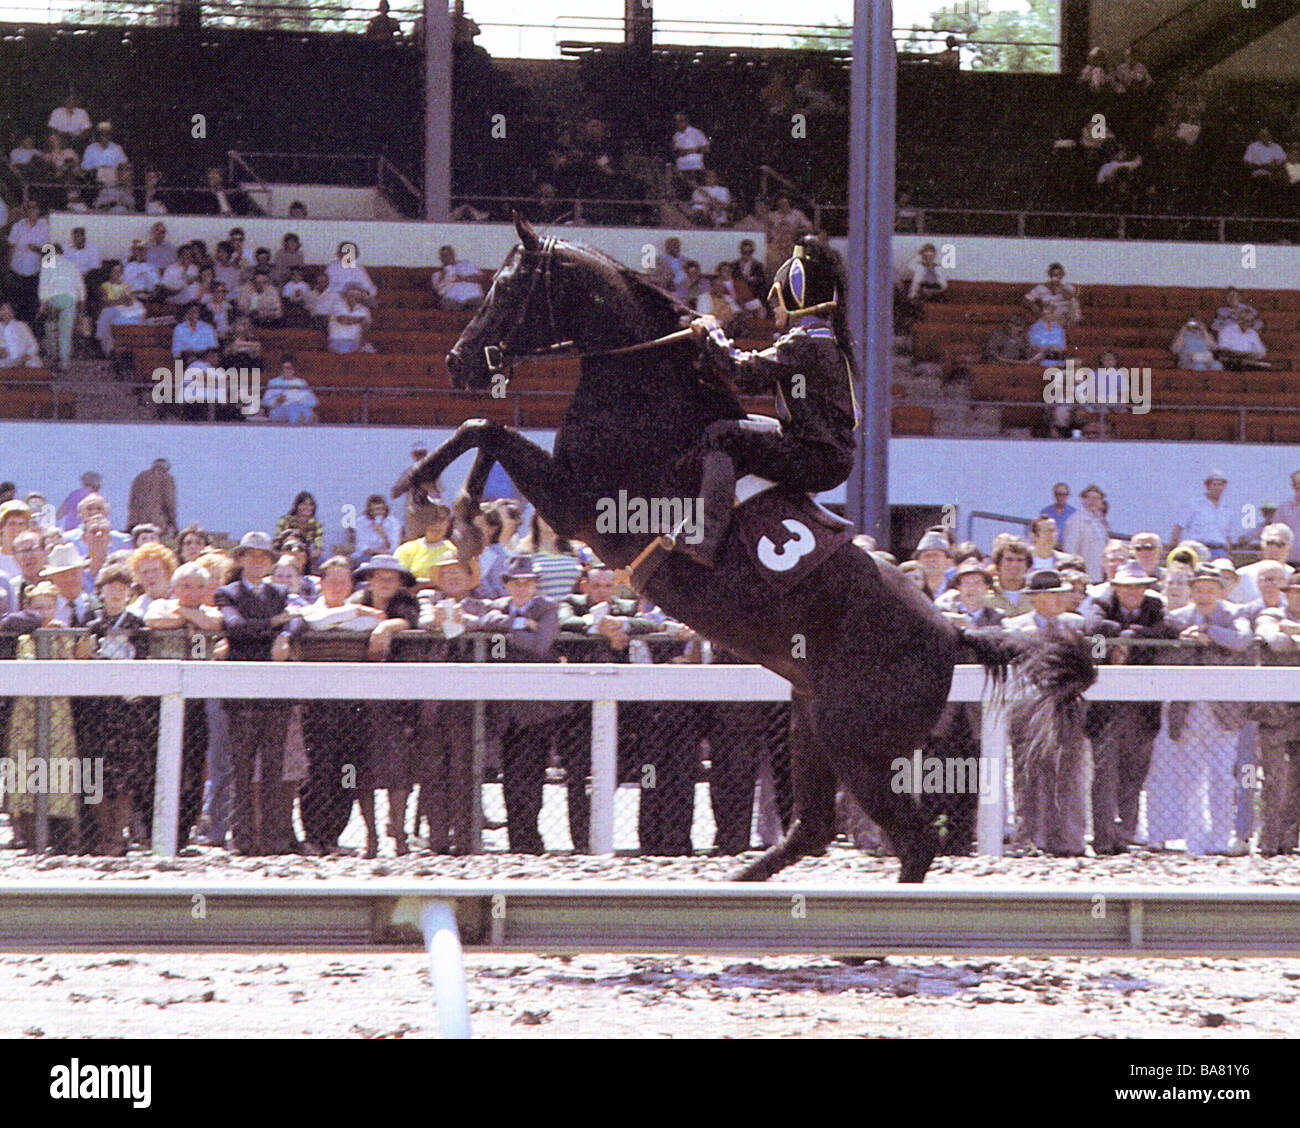 THE BLACK STALLION  1980 UA film - Stock Image